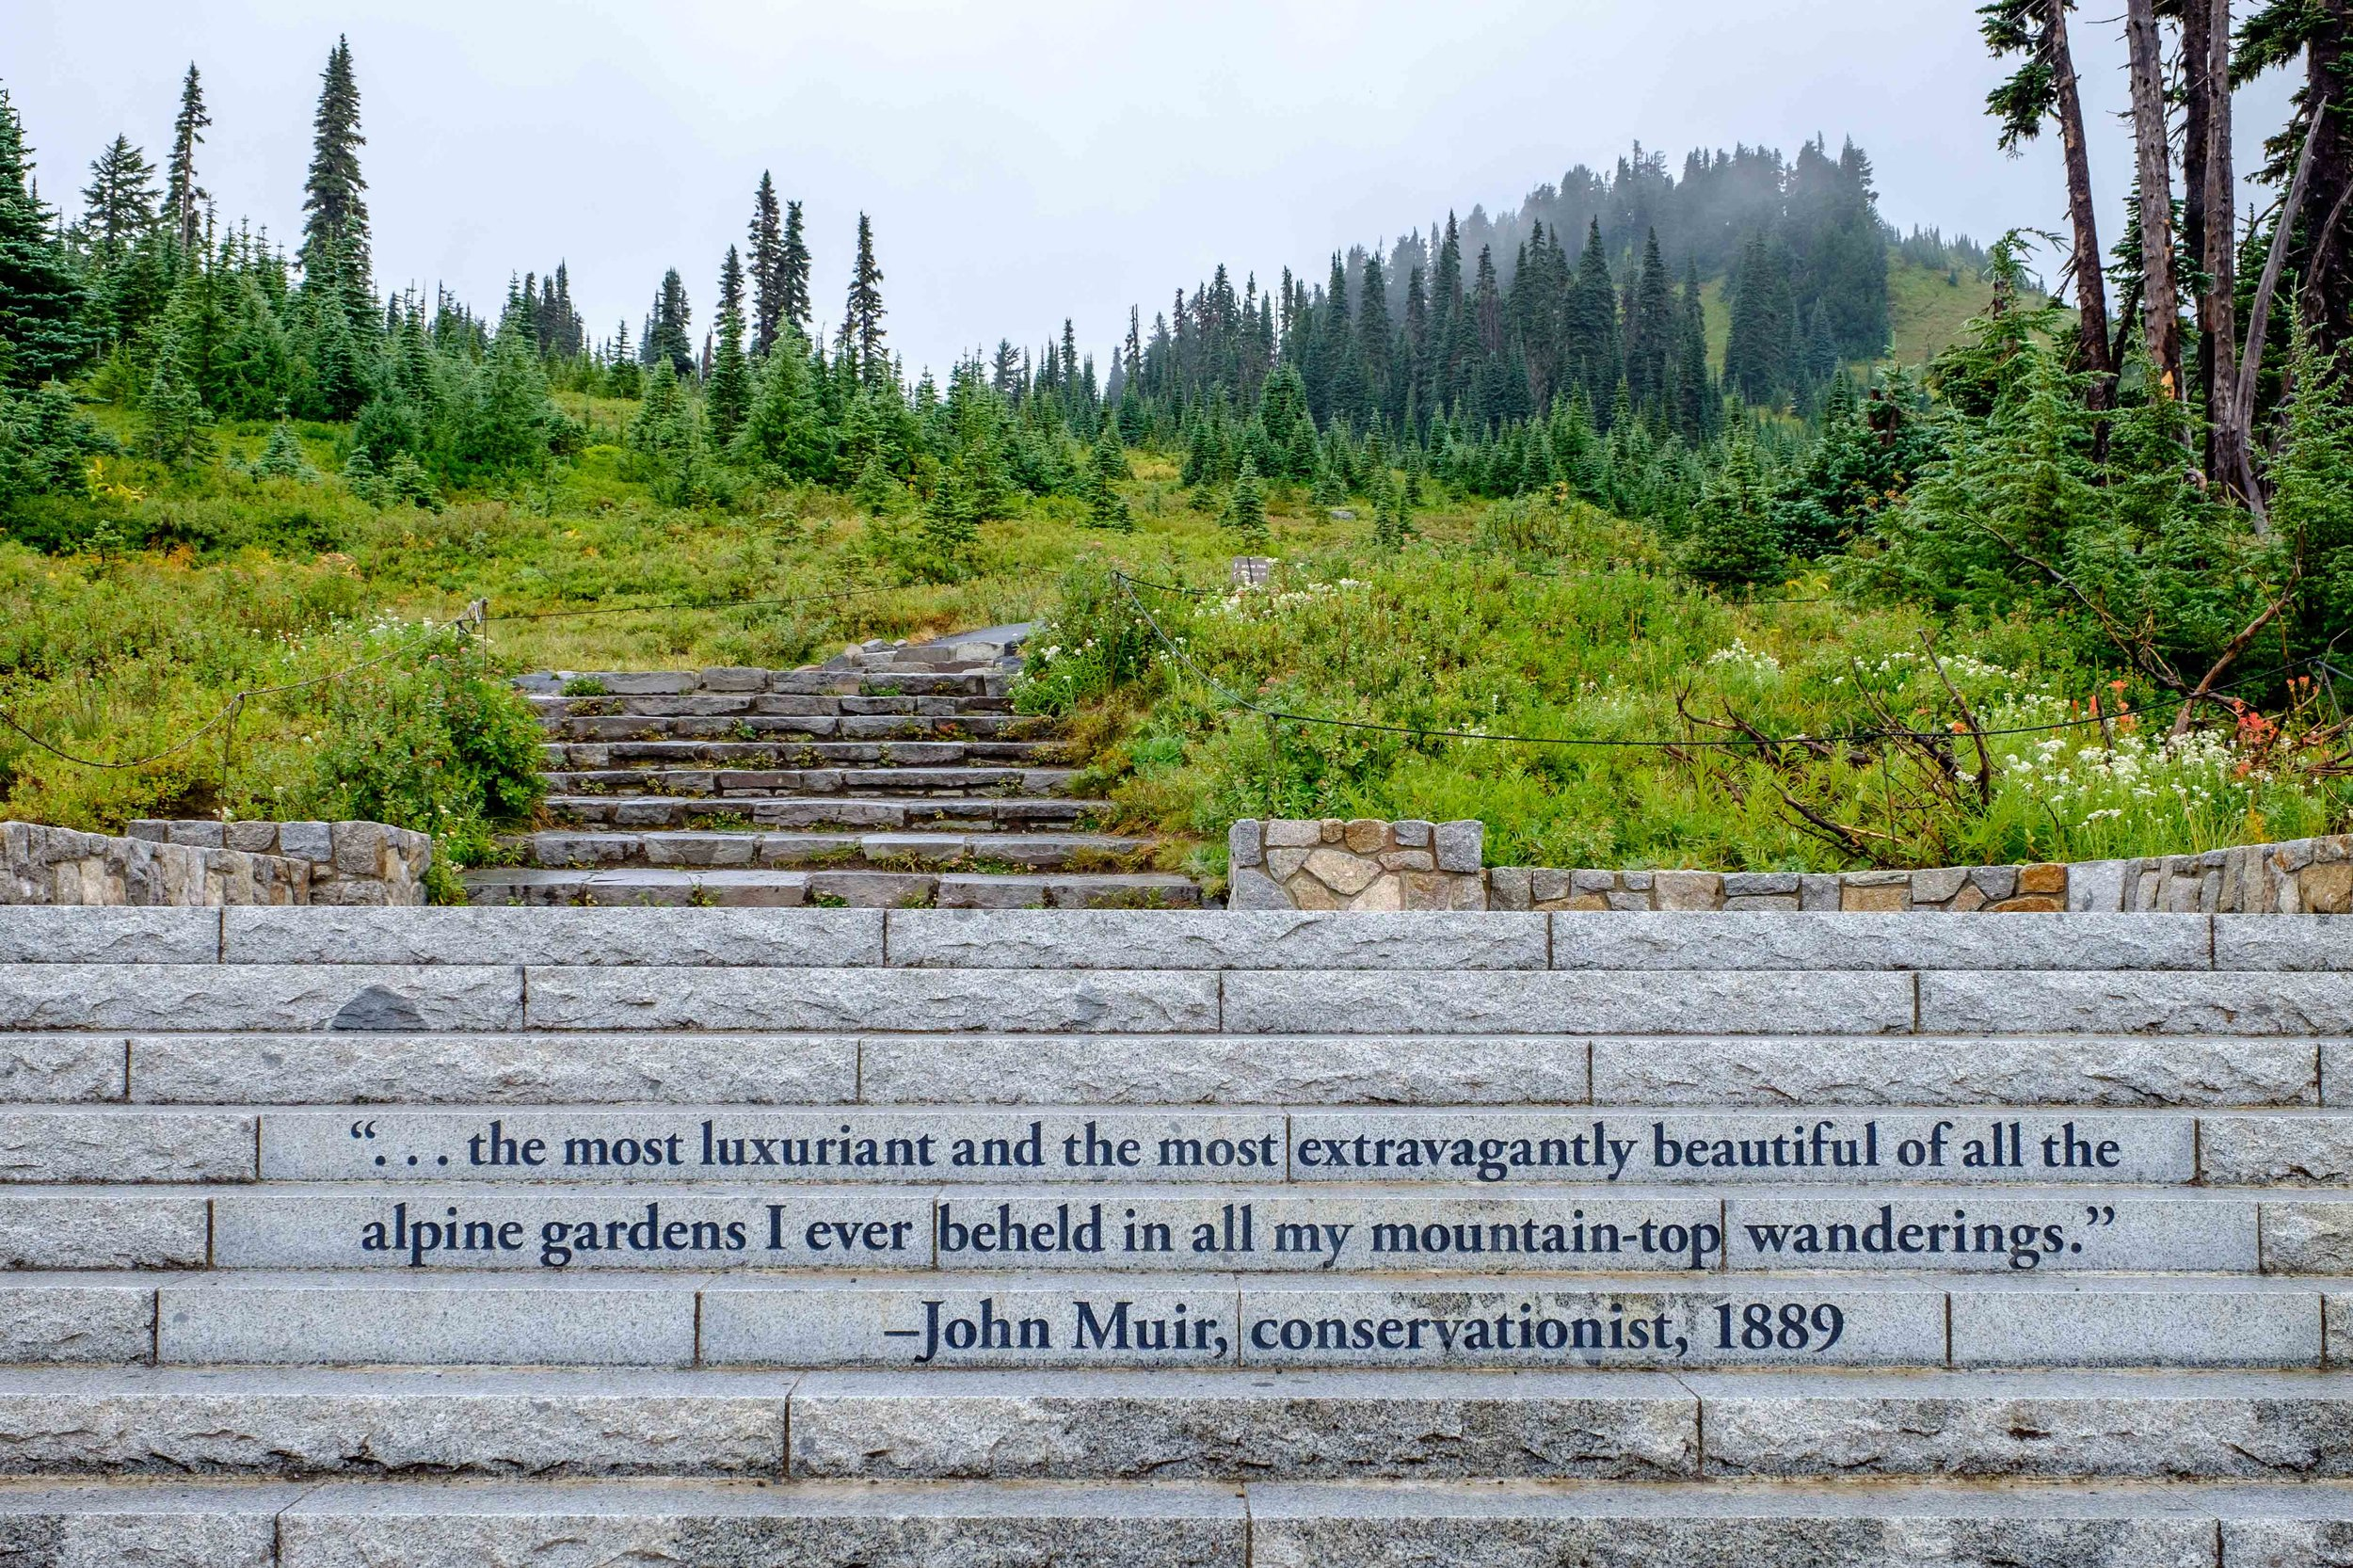 The entrance to Skyline Trail from the steps leading away from the Paradise Jackson Visitor Center is commemorated by touching words by John Muir.